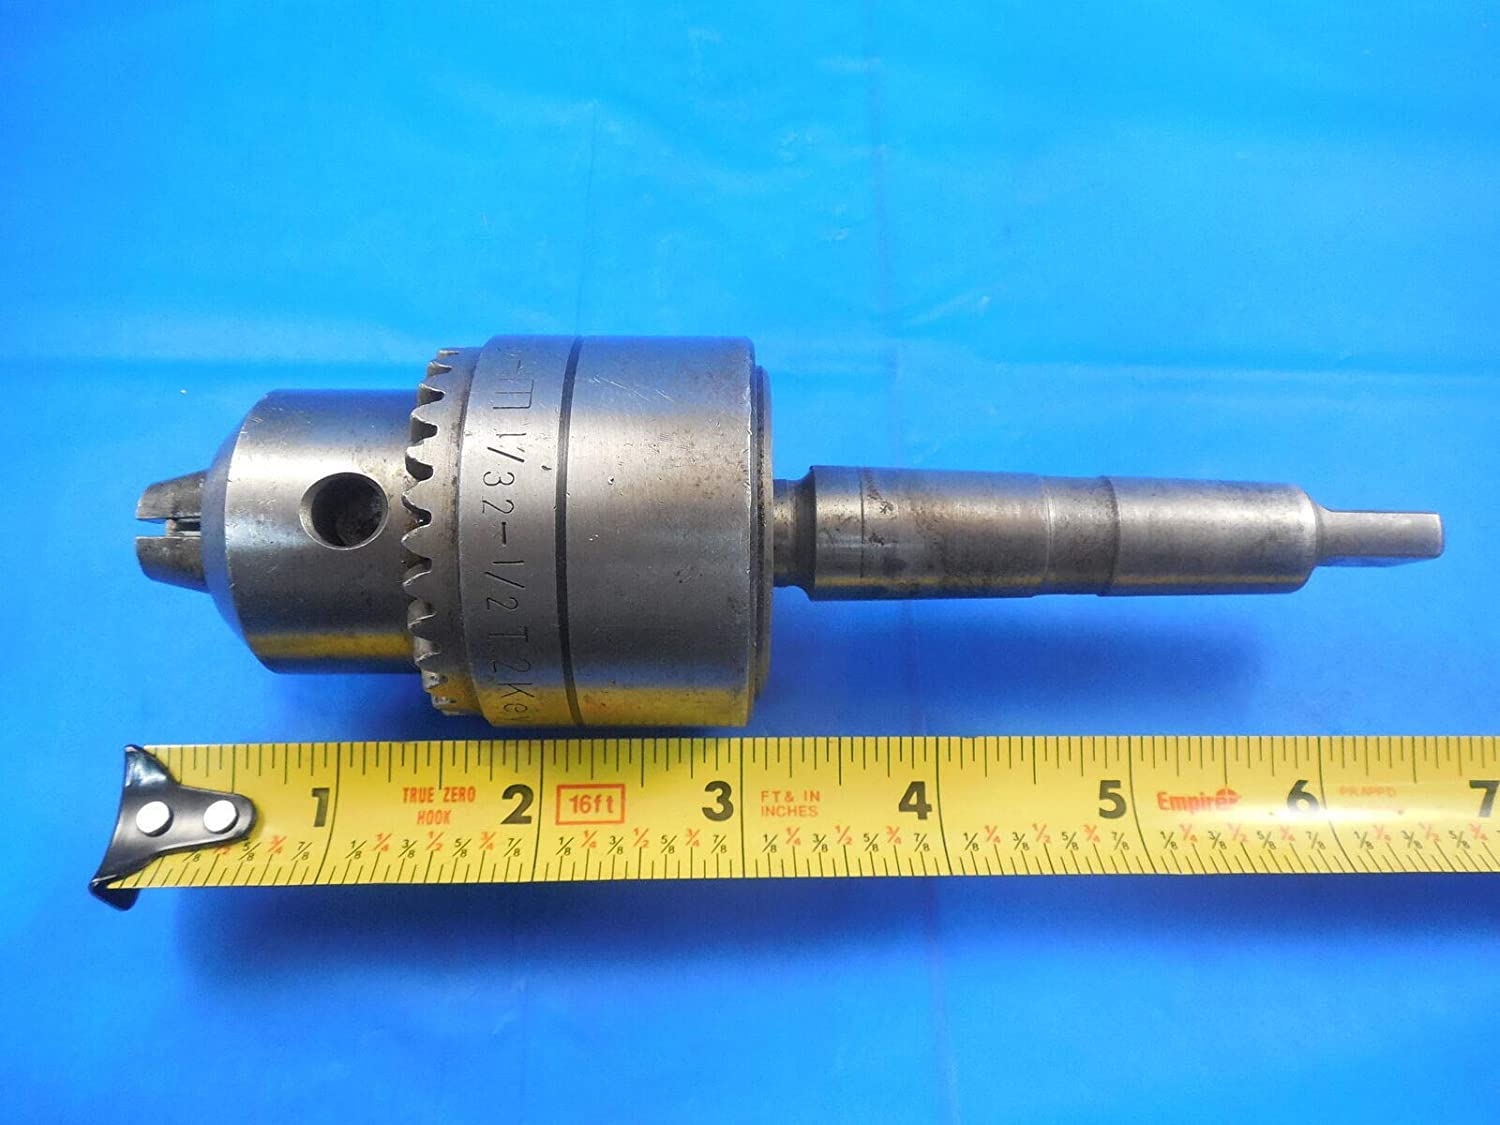 J33 Mount Rohm 871053 Type 136 Supra 13 Keyless Drill Chuck 46mm Diameter,